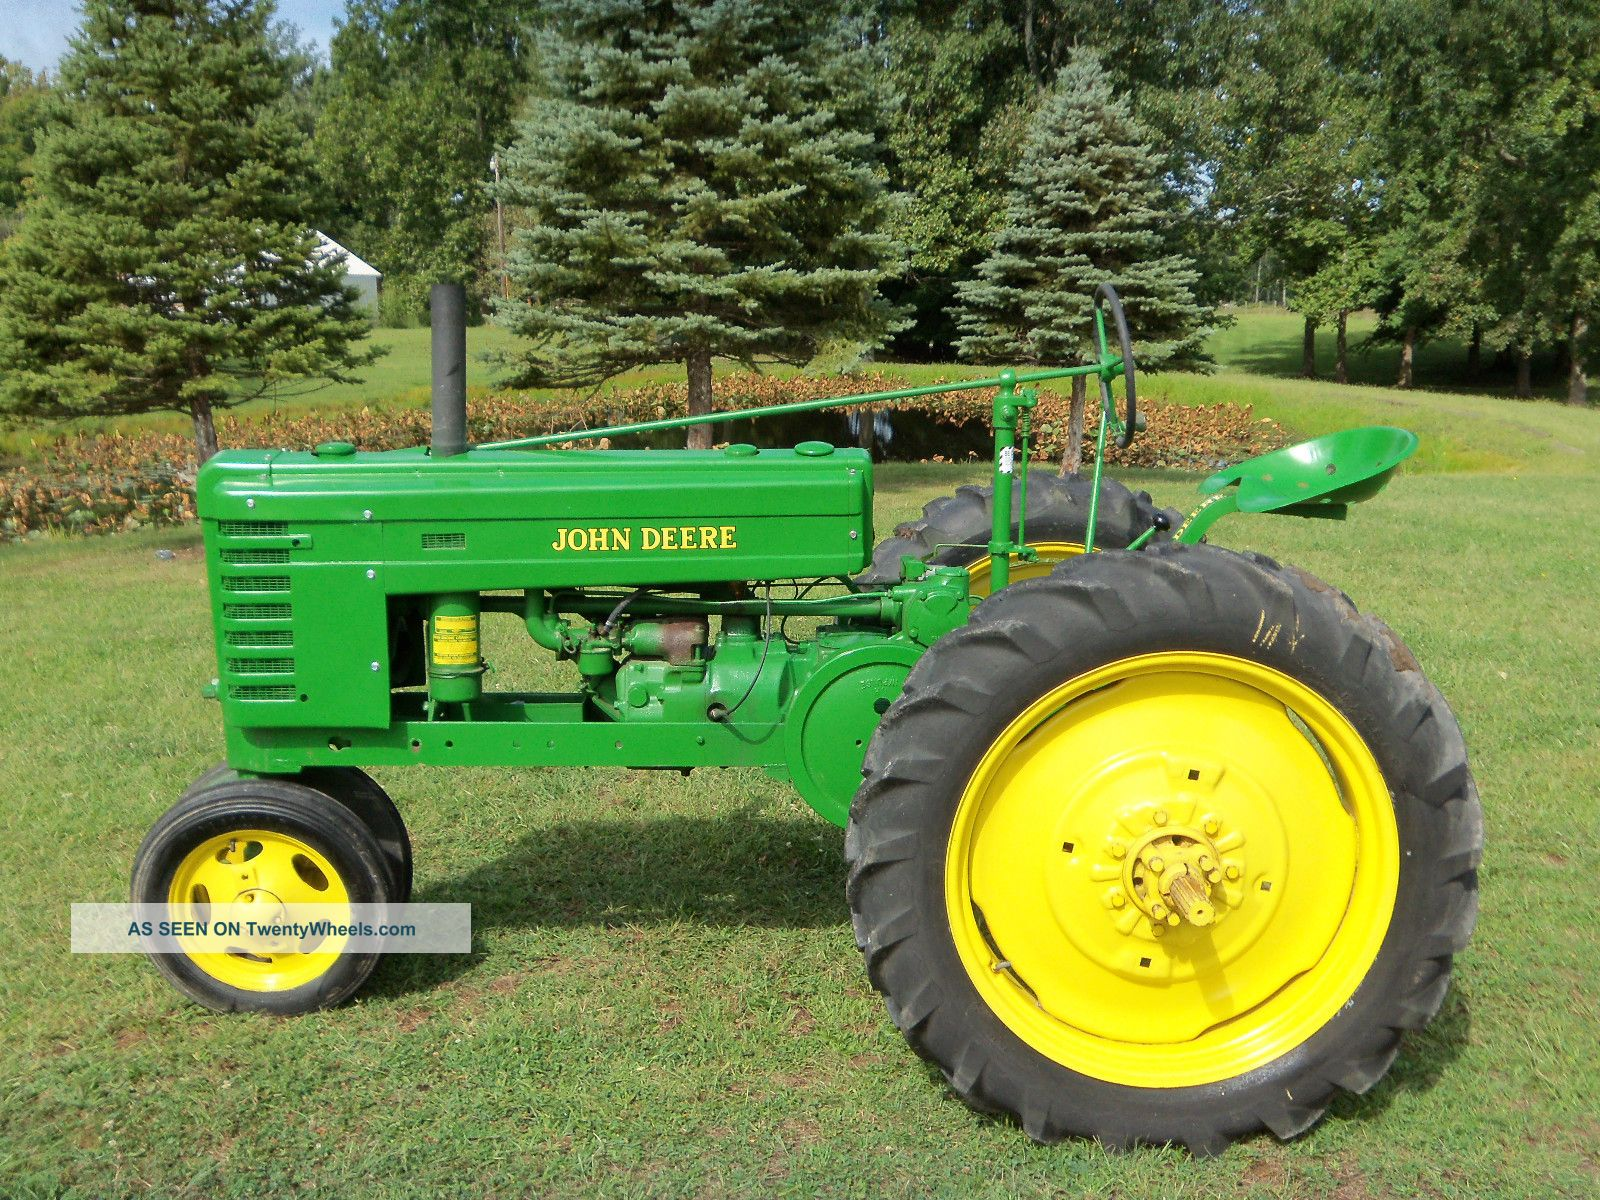 Restored Antique Tractors : John deere h tractor restored